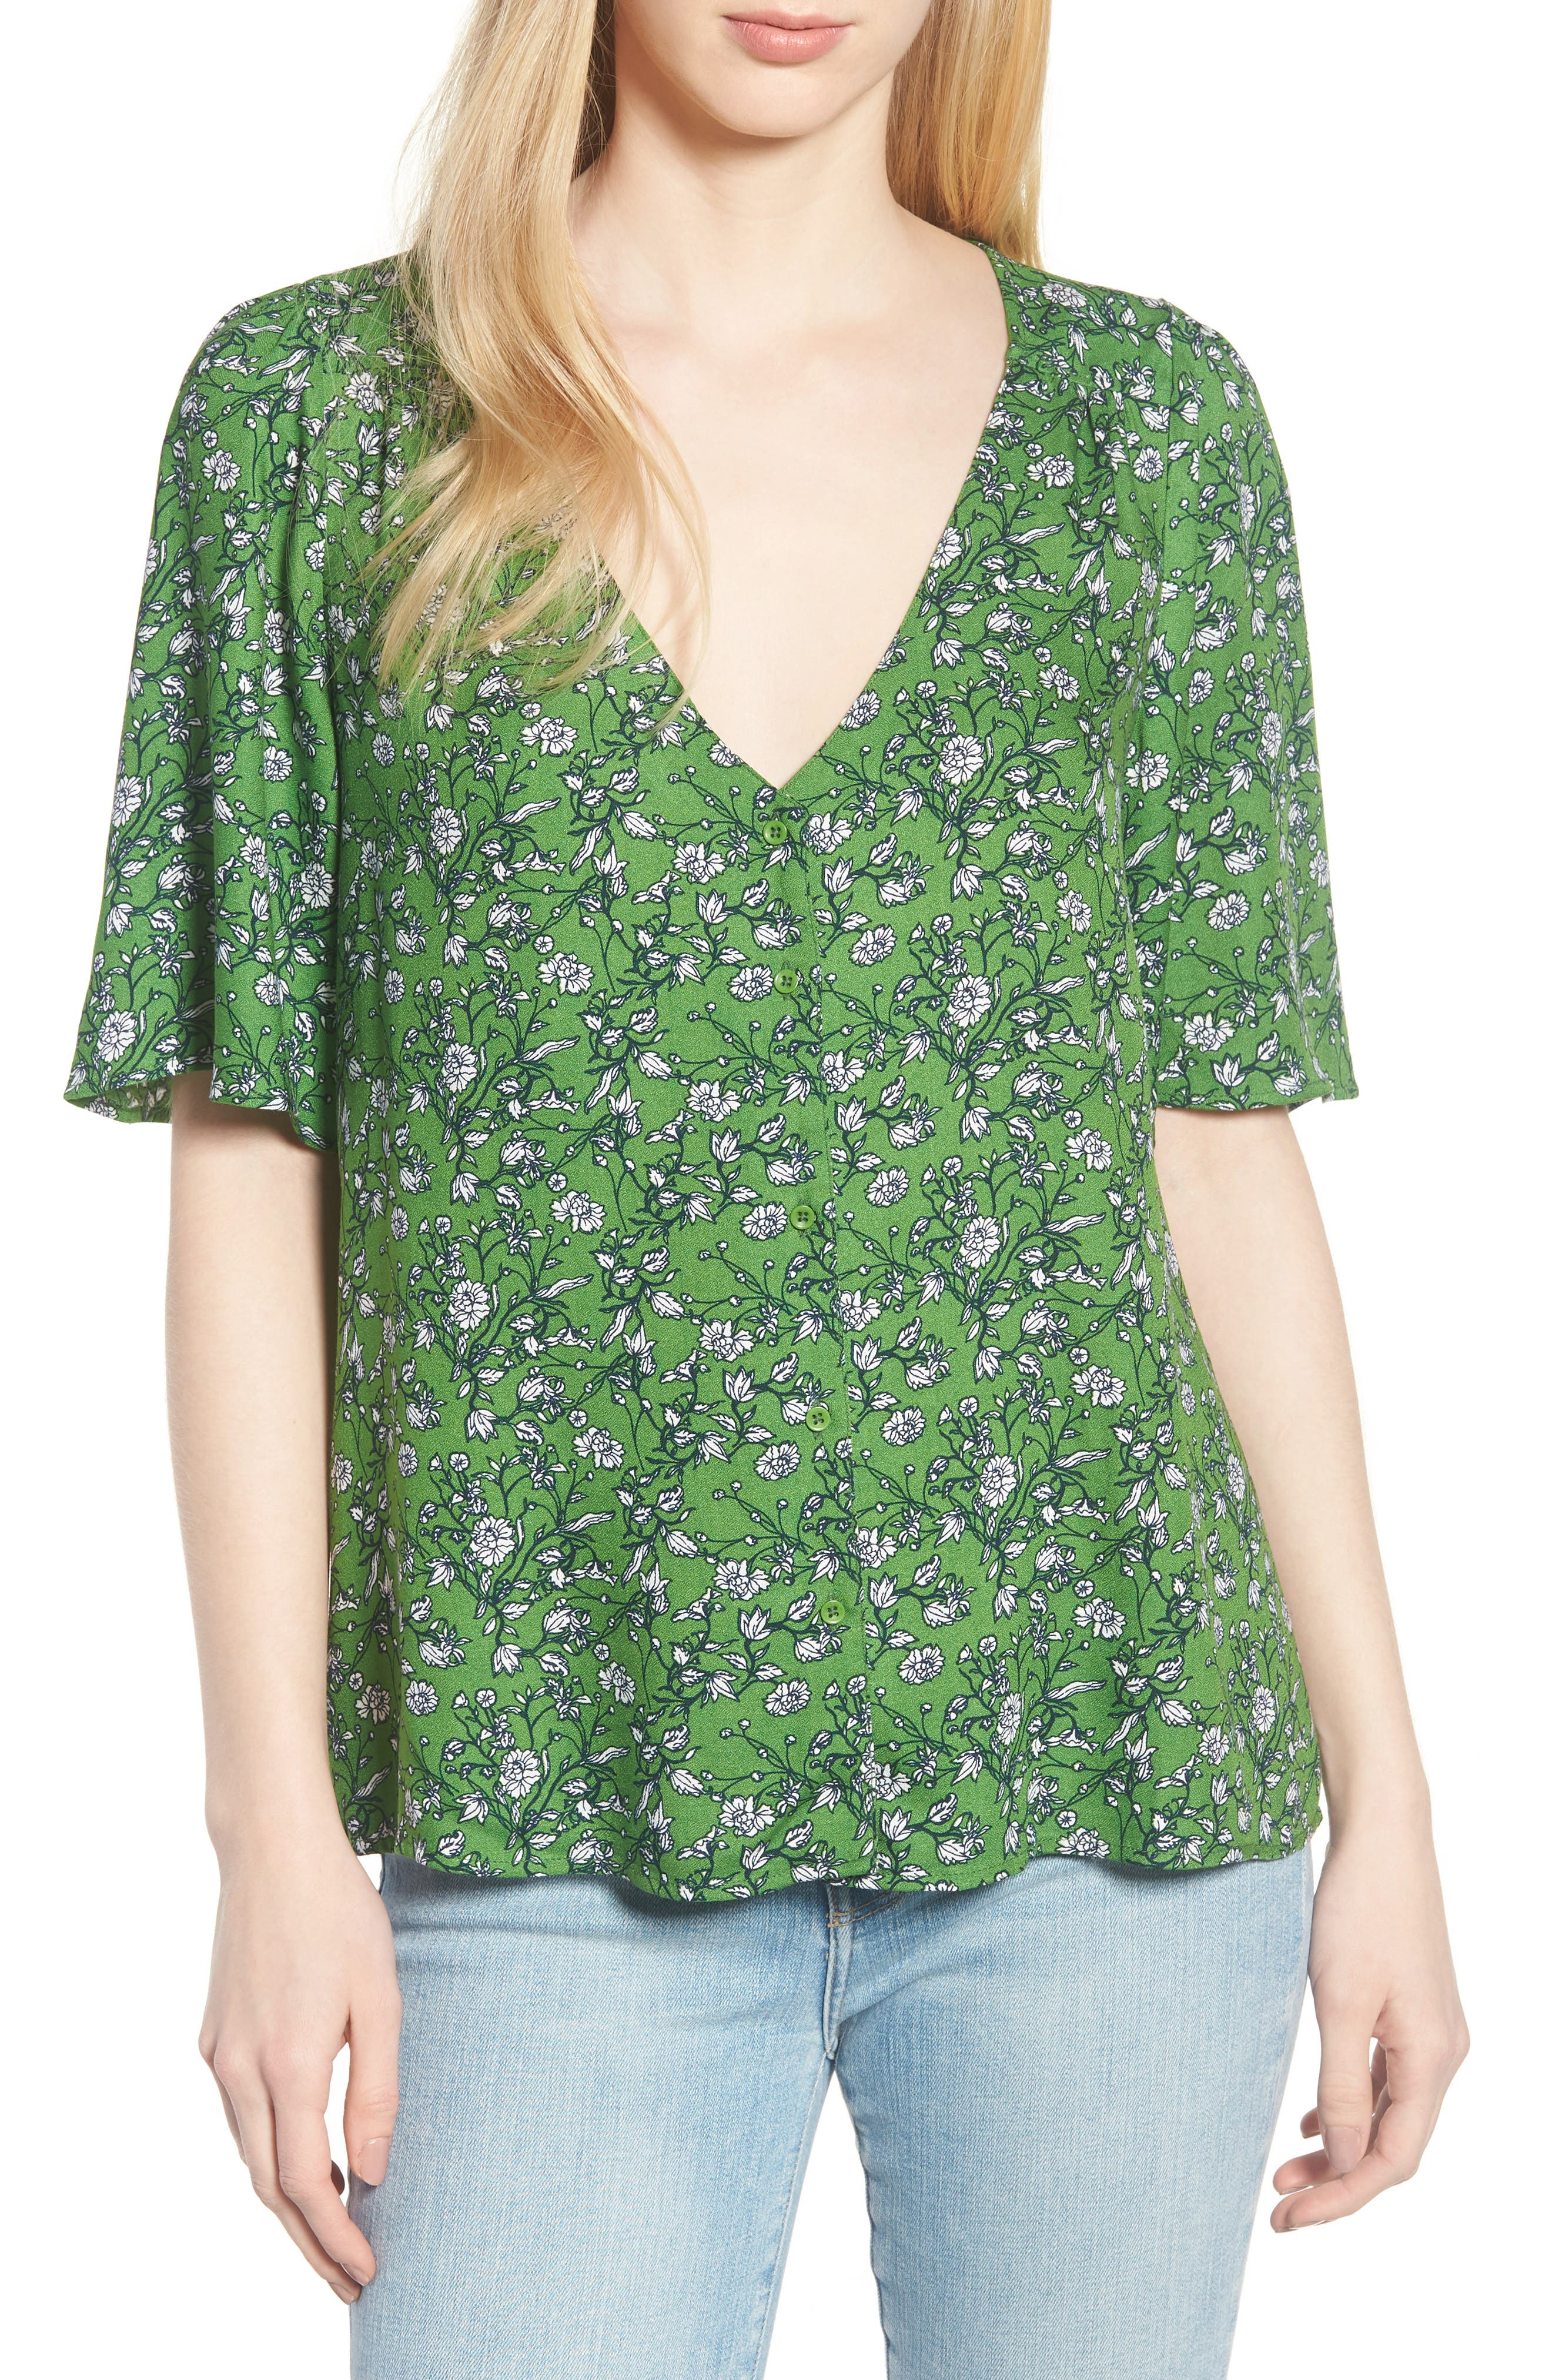 Button Front V-Neck Top,                             Main thumbnail 1, color,                             GREEN CANOPY FLOWER BRANCHES